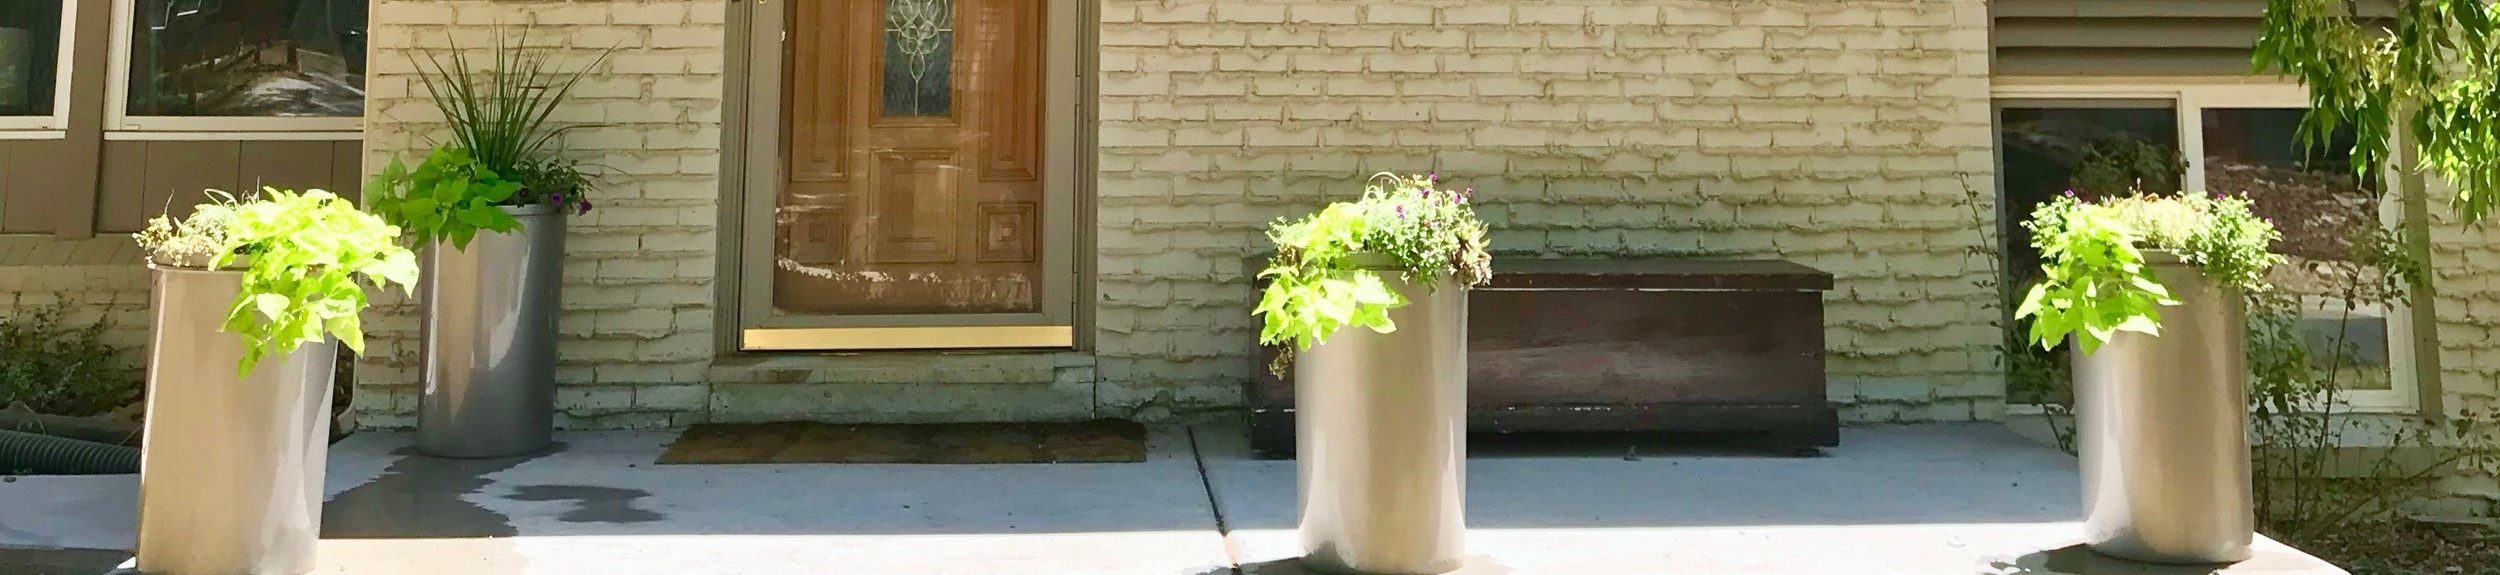 front planters.jpg